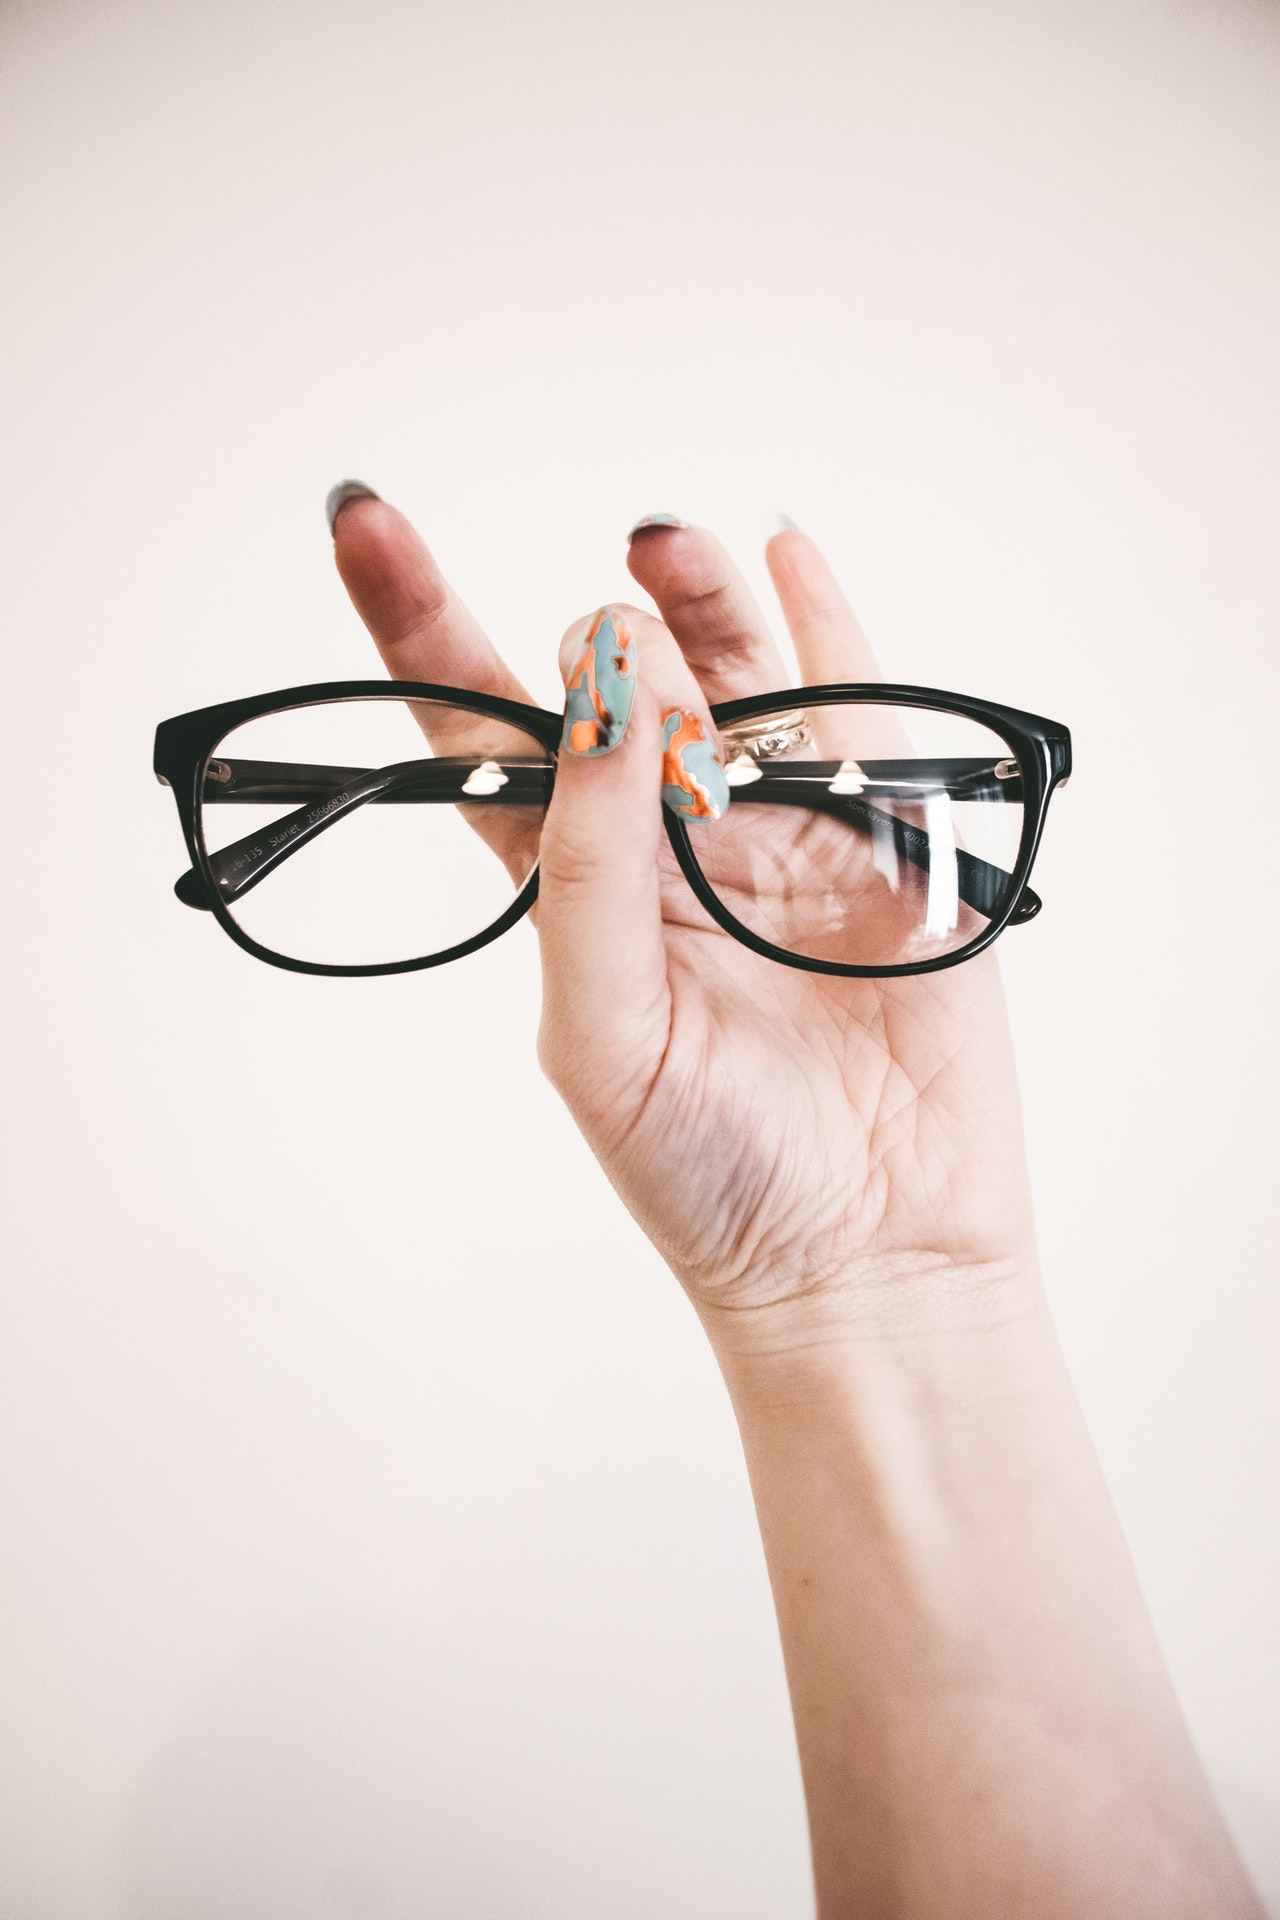 Freelancer Optometrist Guide Article Image